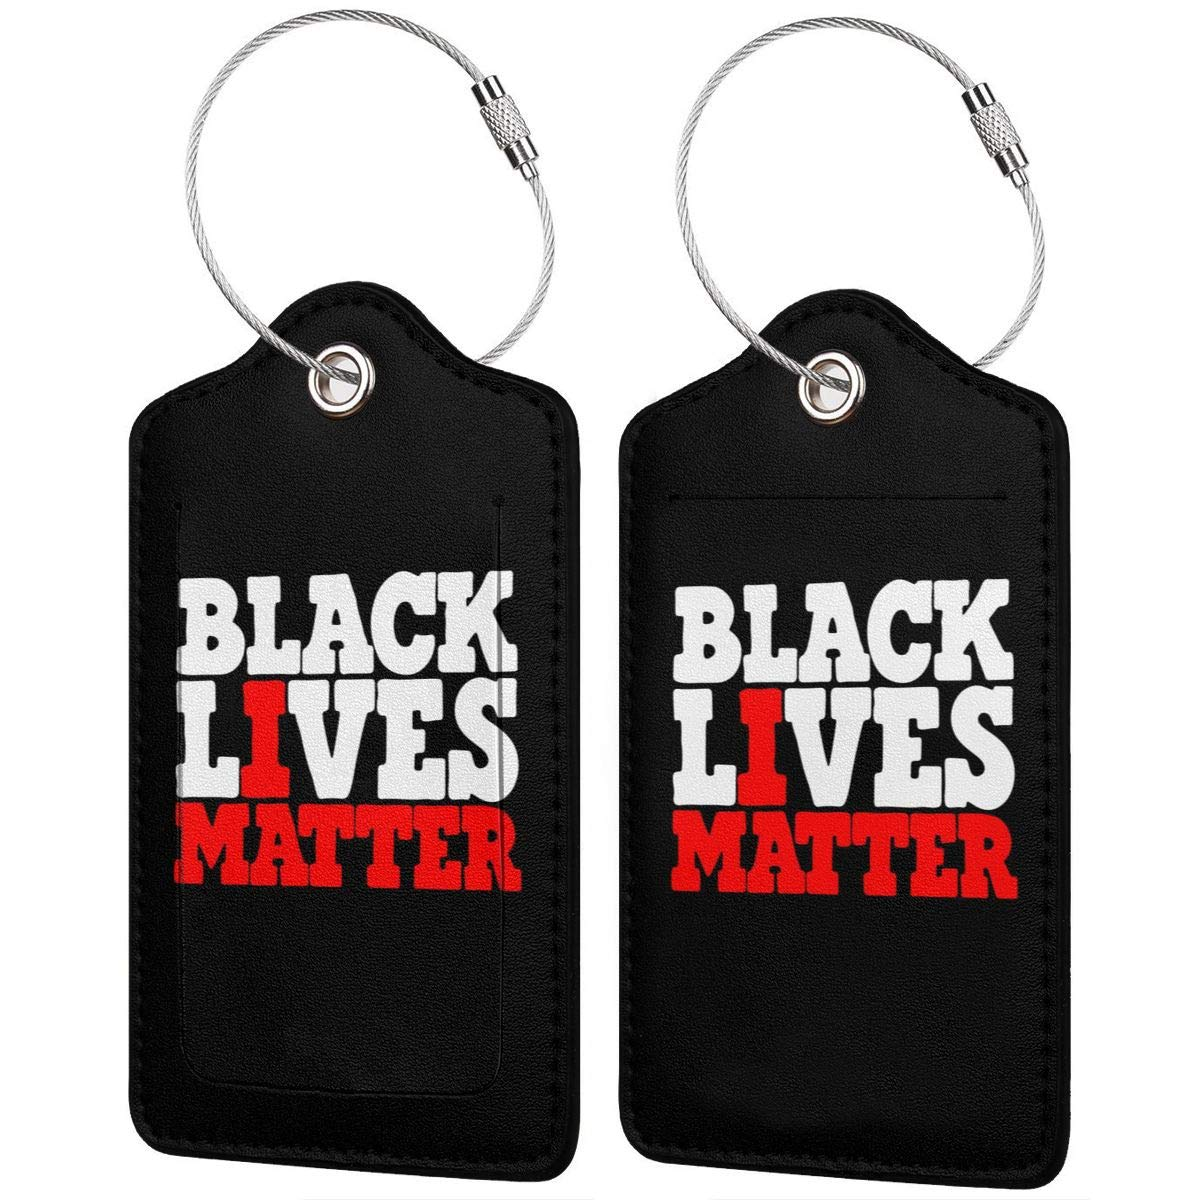 BLACK LIVES MATTER Leather Luggage Tag Travel ID Label For Baggage Suitcase